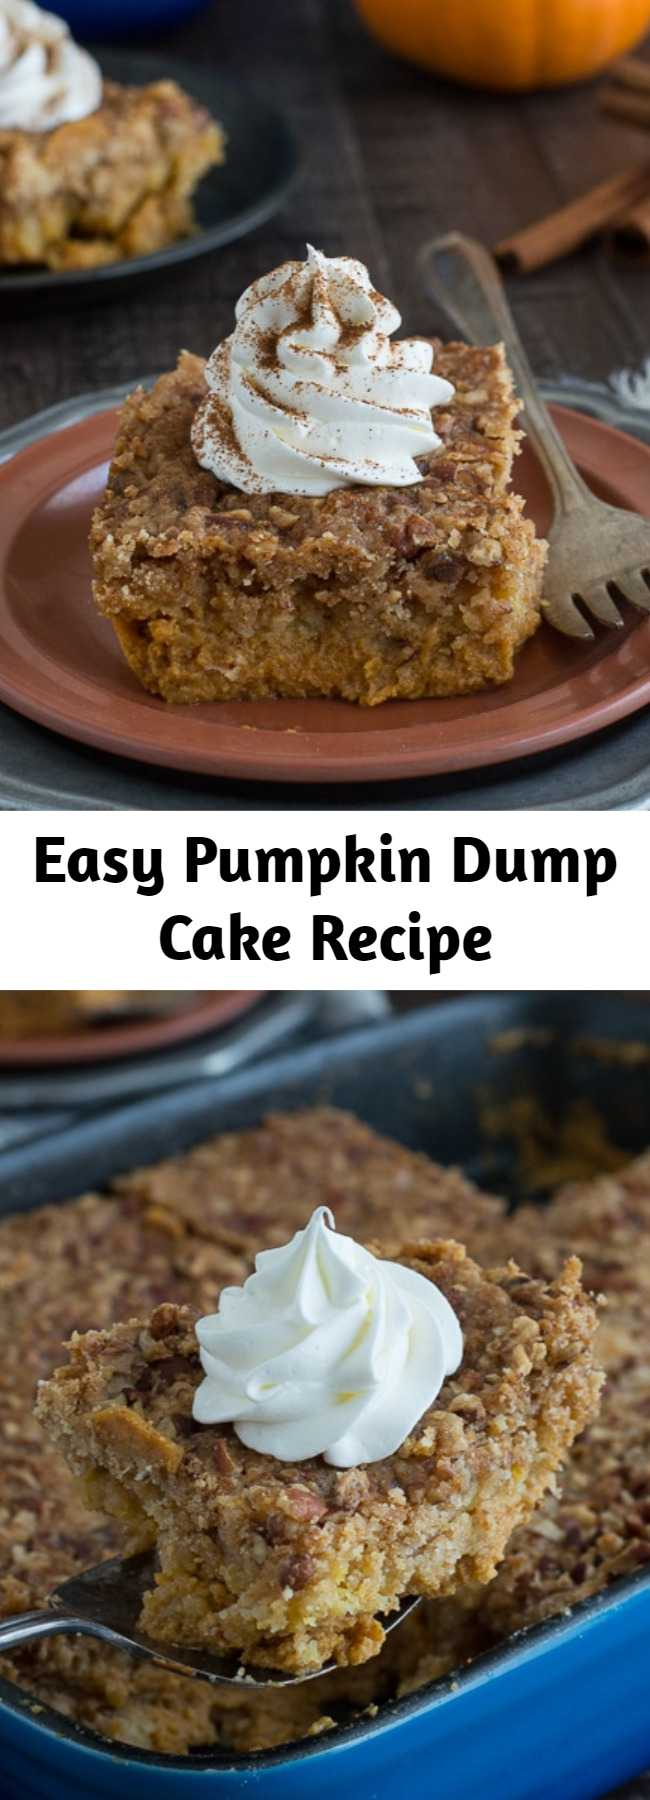 Easy Pumpkin Dump Cake Recipe - Use canned pumpkin and a box of yellow cake mix to make 8 ingredient pumpkin dump cake! Just mix, dump, and bake - it's ready in under 1 hour! This will be a family favorite pumpkin dessert!